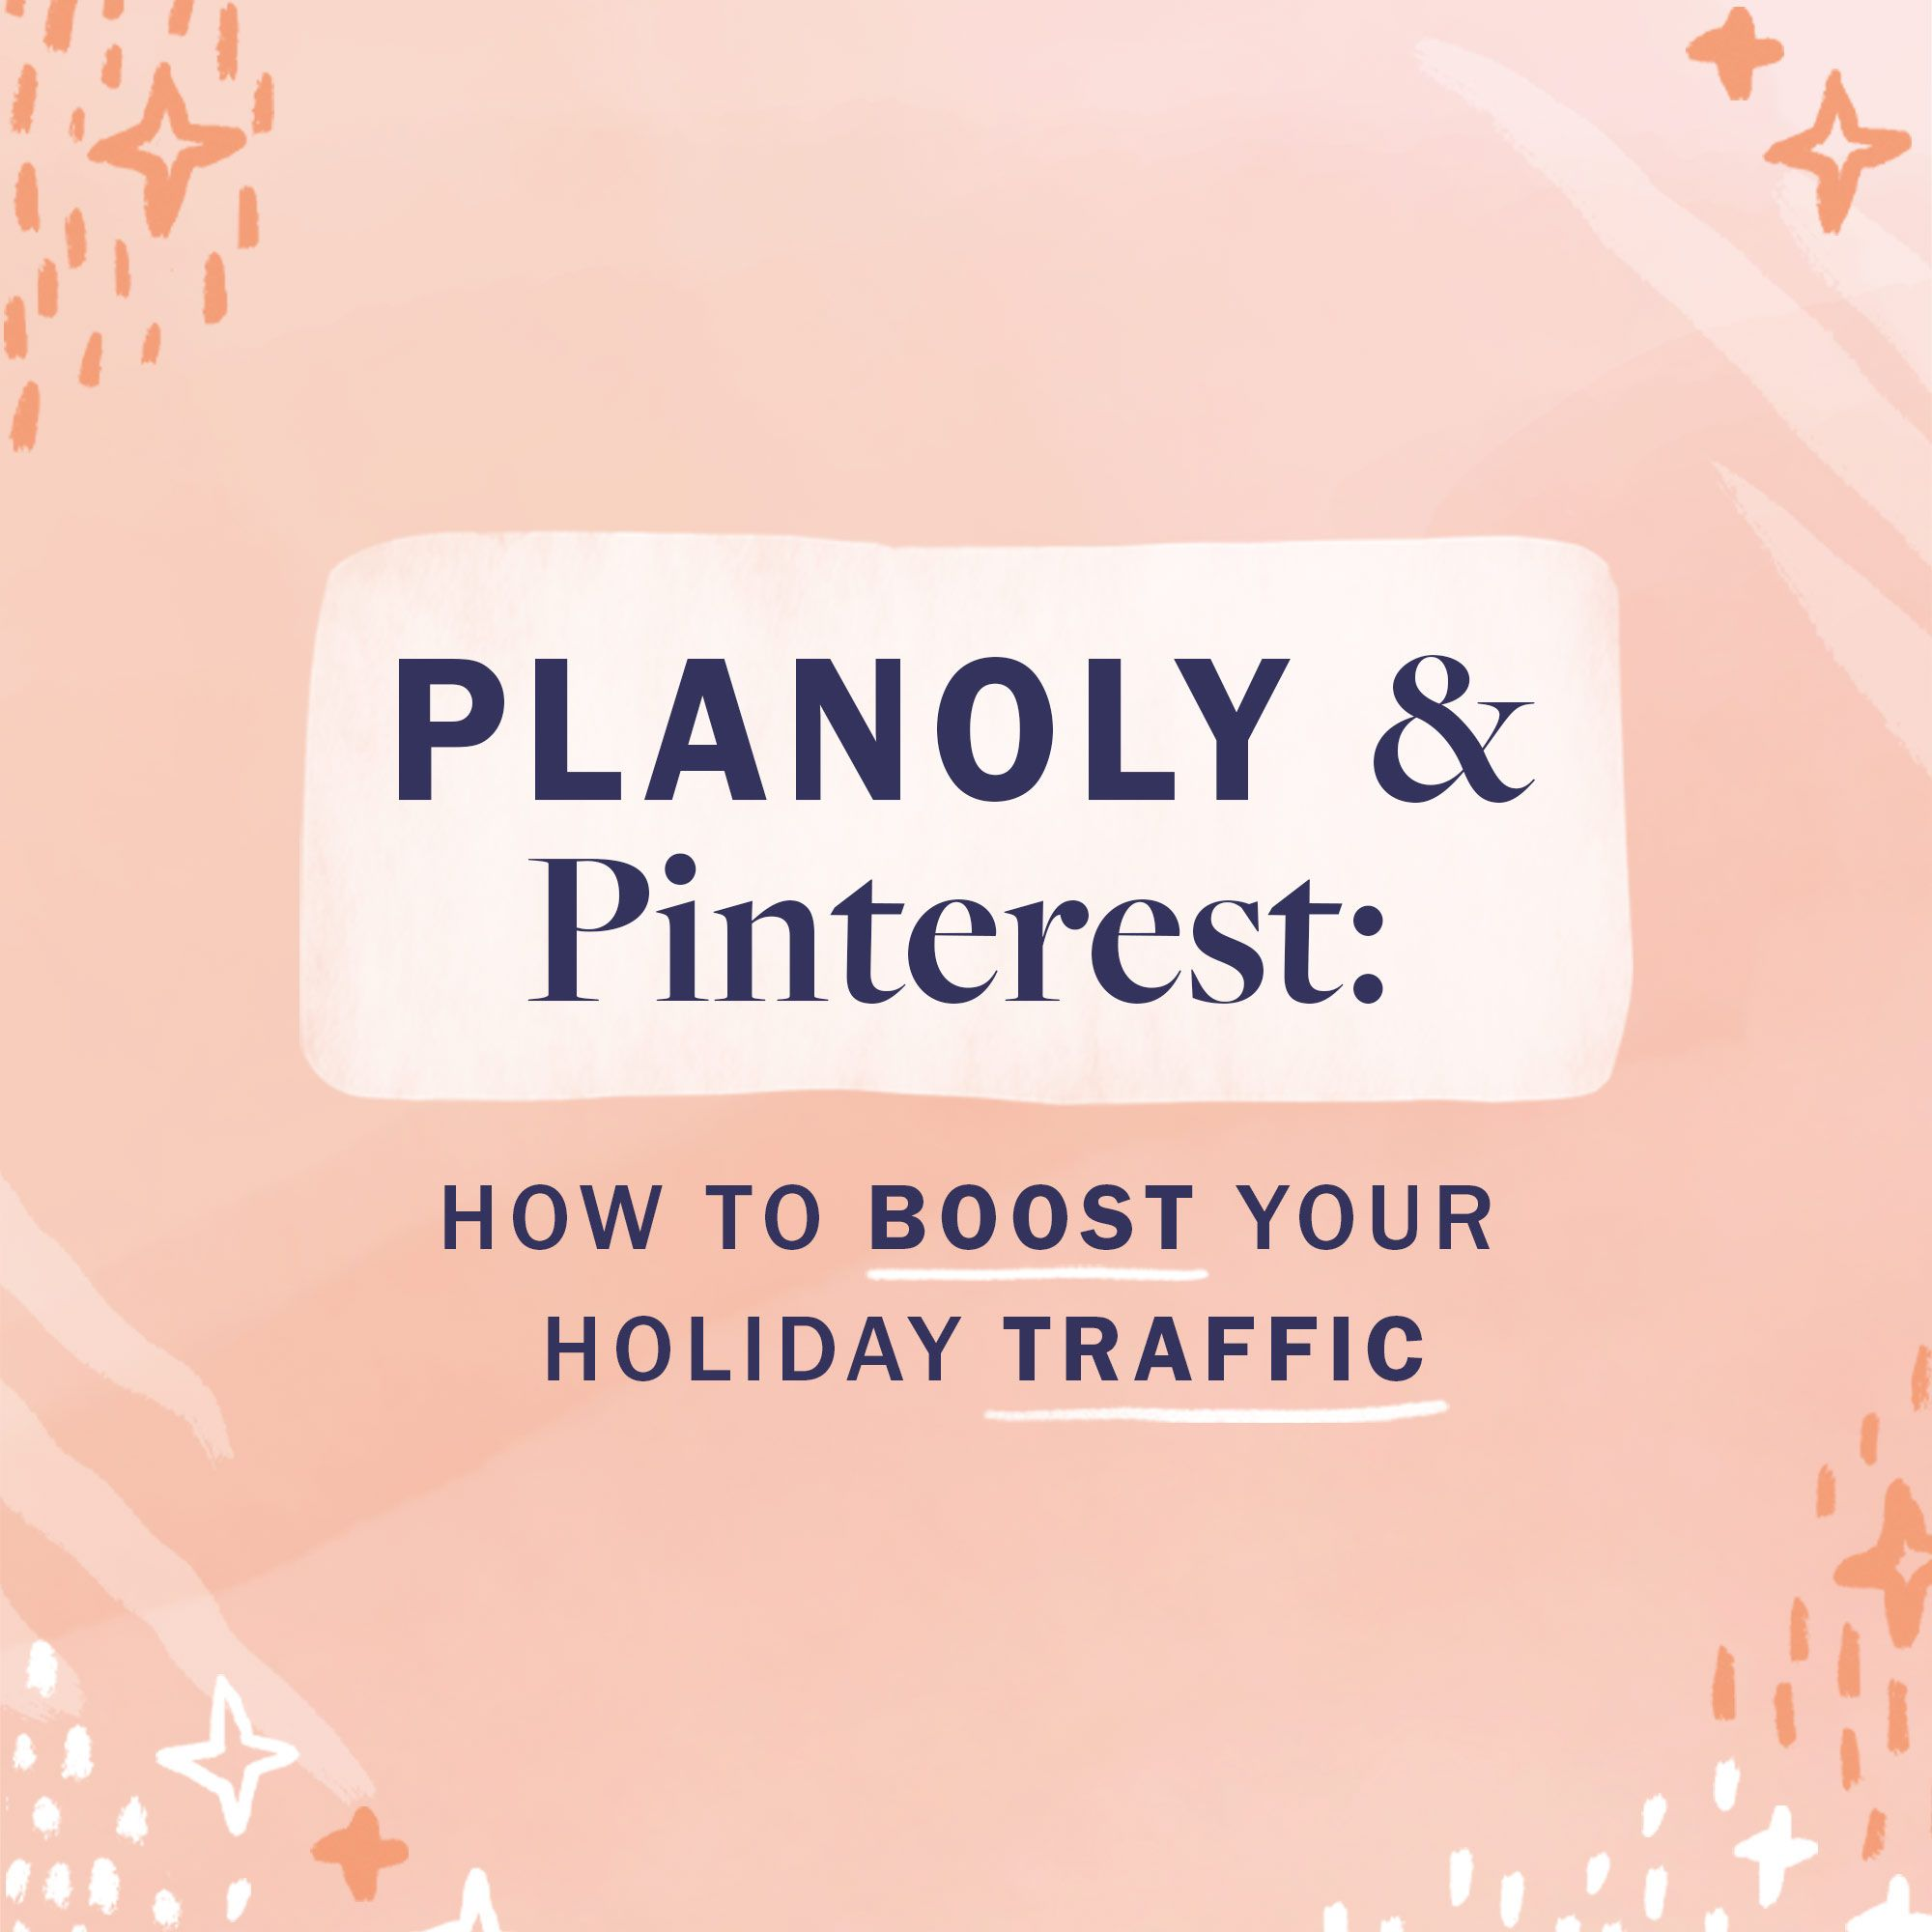 How to use PLANOLY and Pinterest to boost traffic and simplify your Holiday Season planning